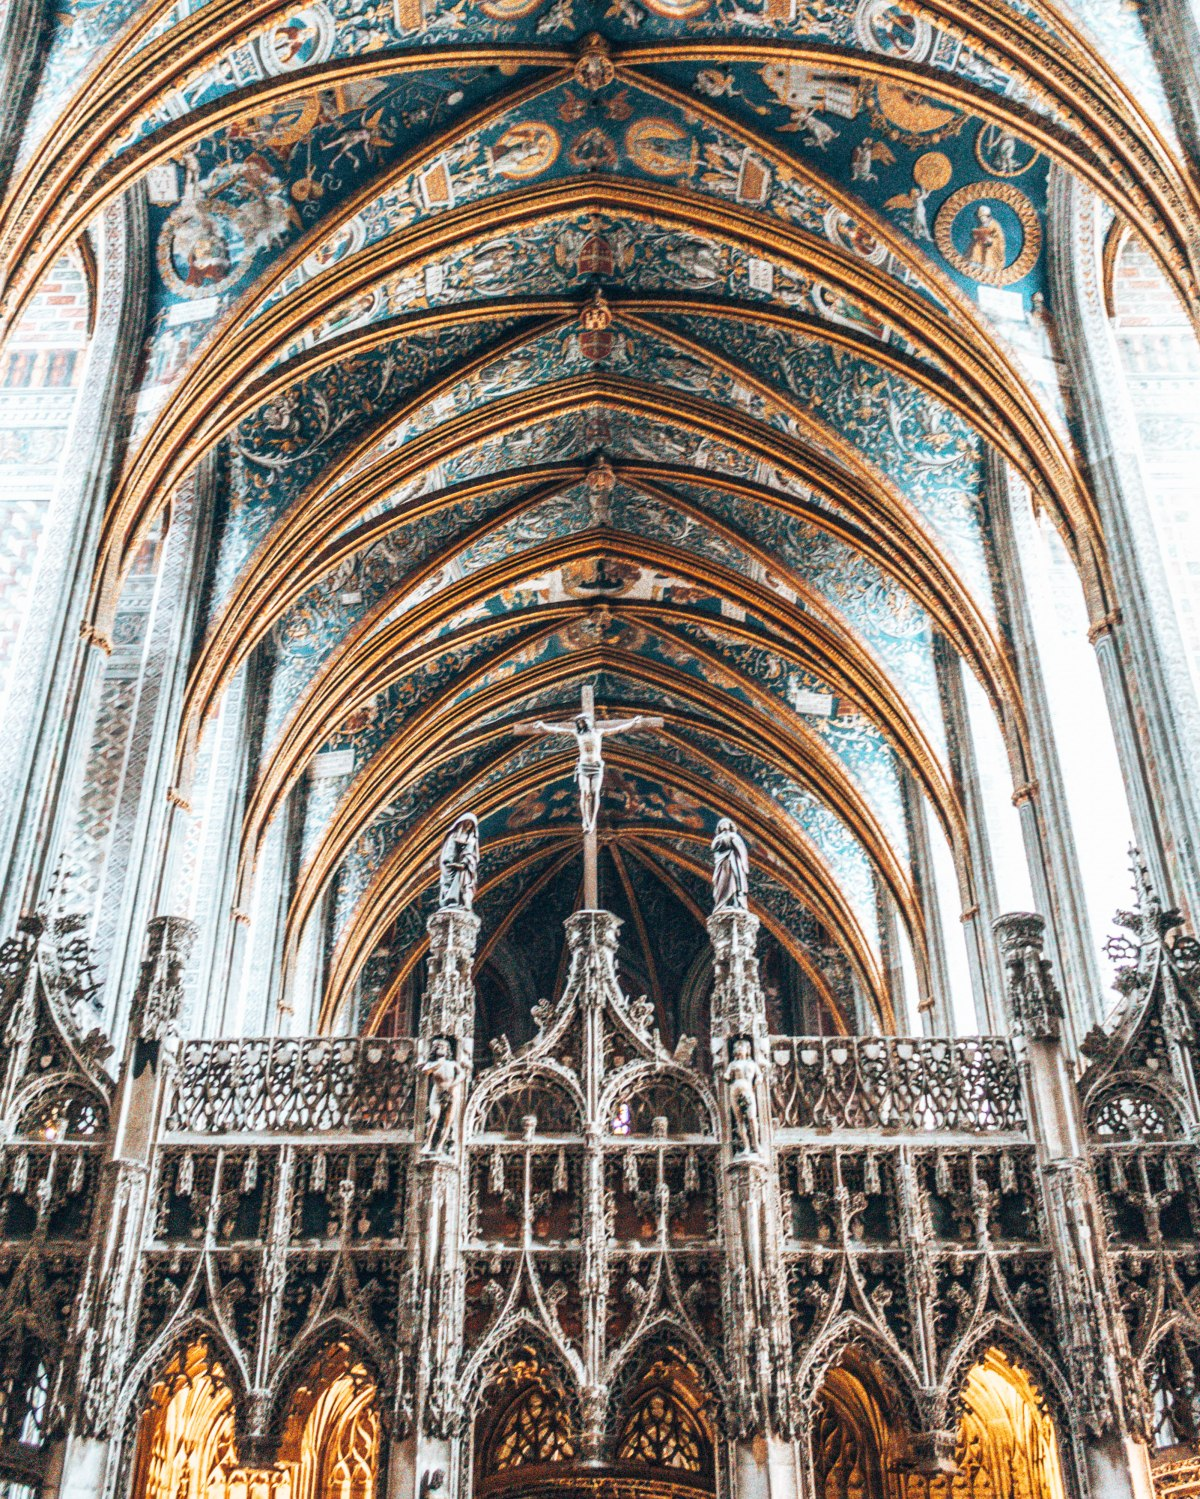 The beautiful cathedrals of Southern France